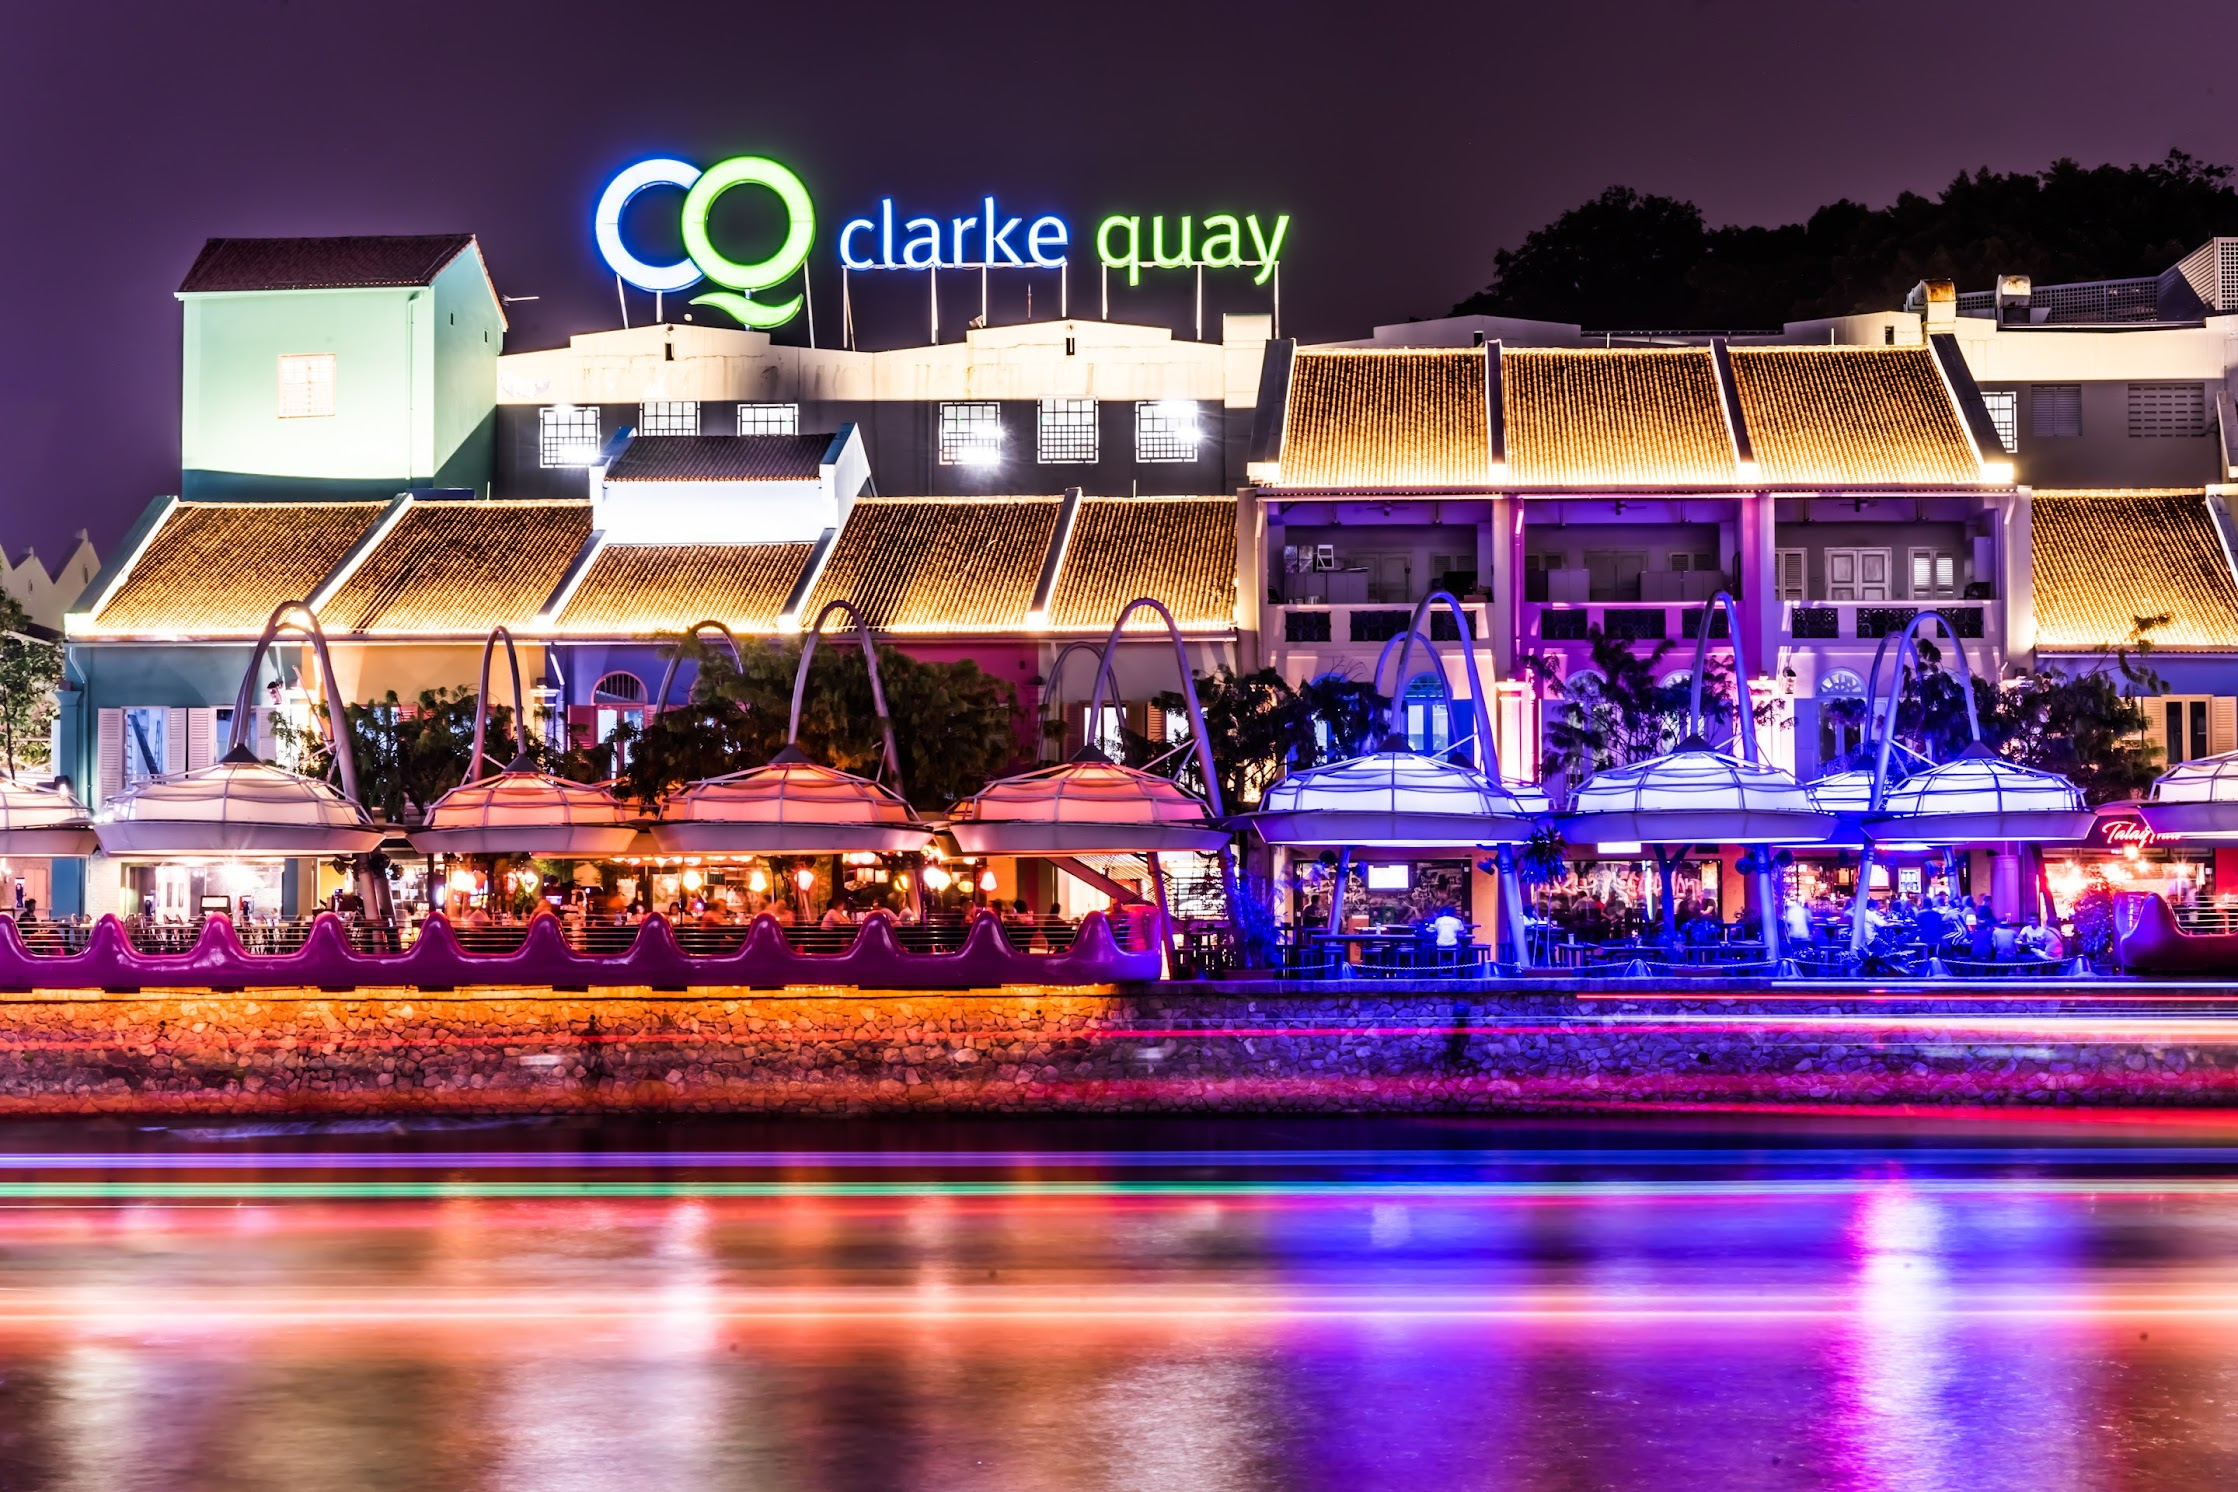 Singapore Clarke Quay night view2